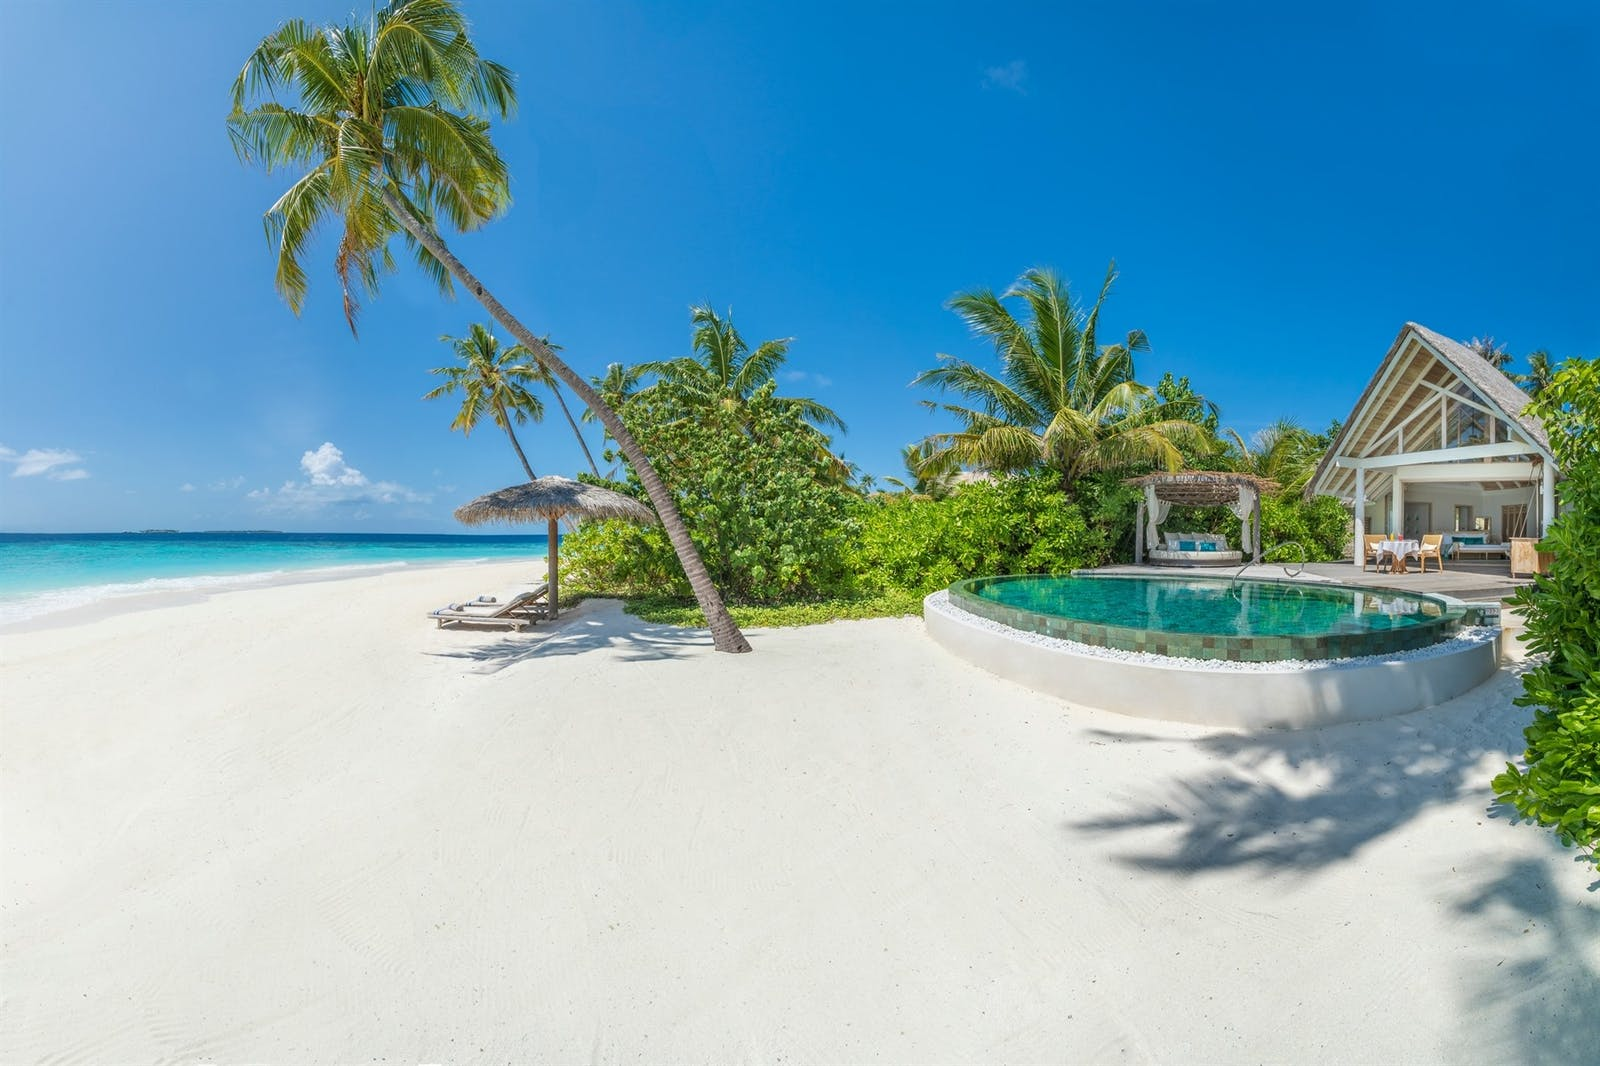 Beach Pool Villa at Milaidhoo, Maldives